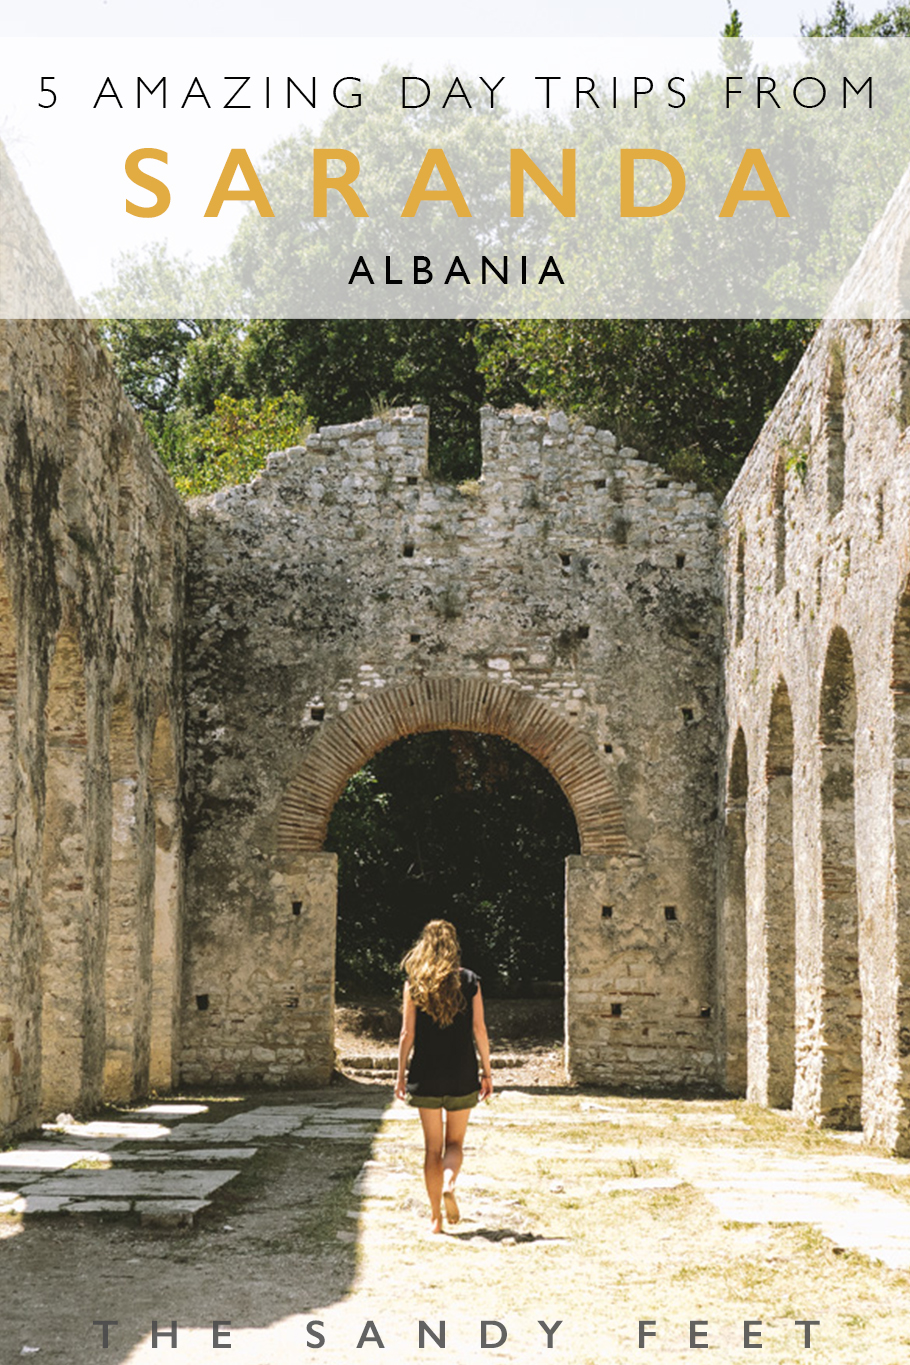 5 Amazing Day Trips From Saranda | Albania. Saranda can get a little hectic in summer, but luckily it's also a perfect jump off point for a number of excellent day trips, including Butrint National Park, Ksamil, the Blue Eye and Gjirokaster.